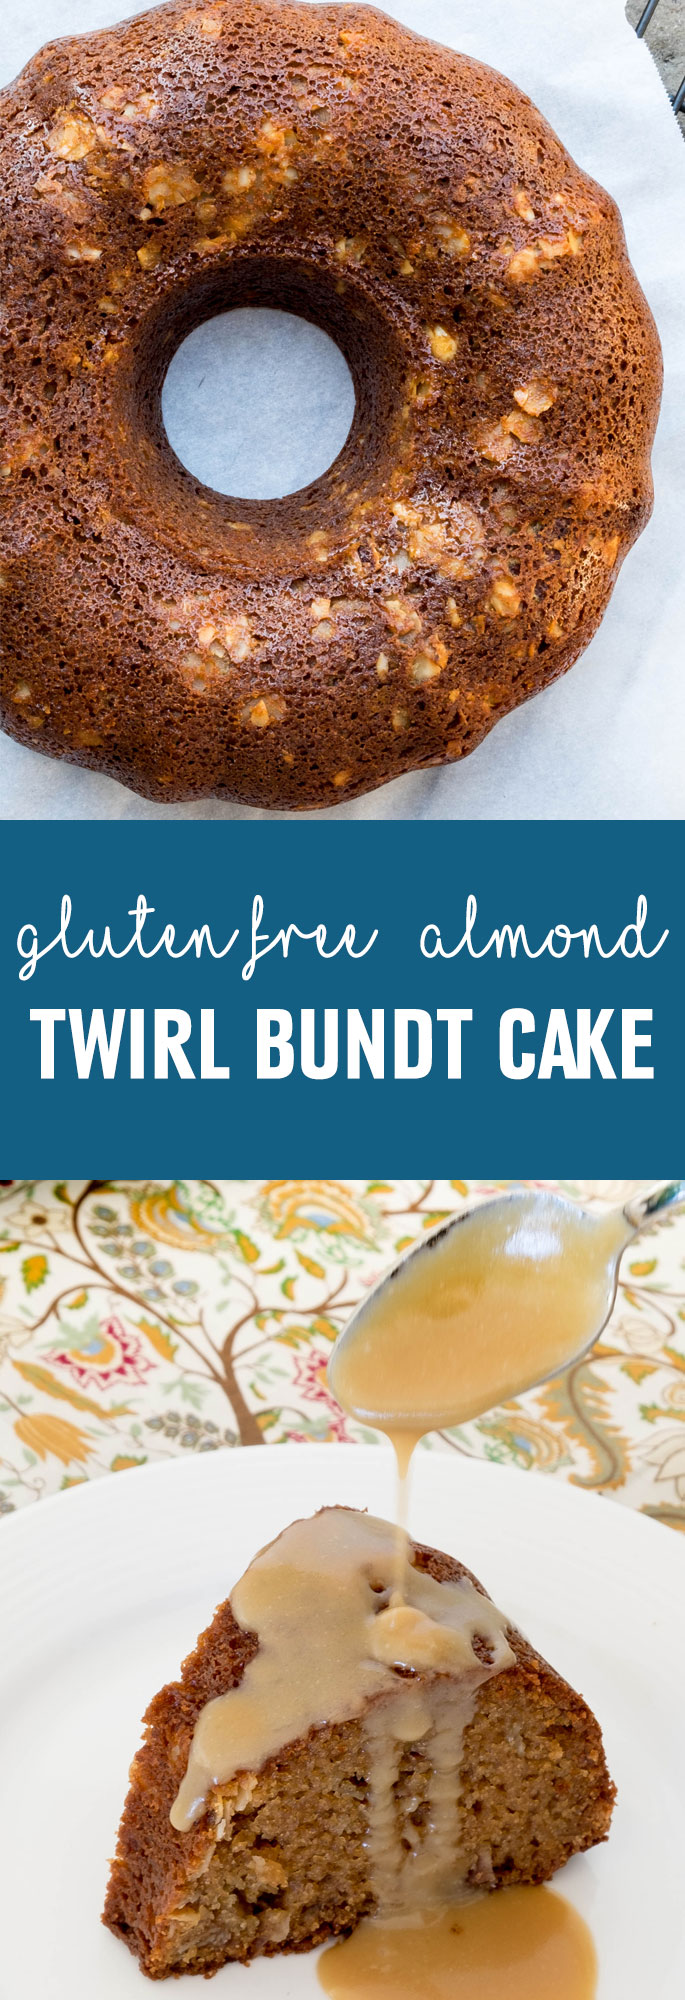 Once you make this gluten free Bundt cake, you will never need another Bundt cake recipe again.  The perfect consistency that is light and airy with the added almond cinnamon lemon swirls makes this recipe a winner. Most Bundt cakes are made with a lot of butter making them heavy and high in calories. Shared via http://www.gluteninsight.com